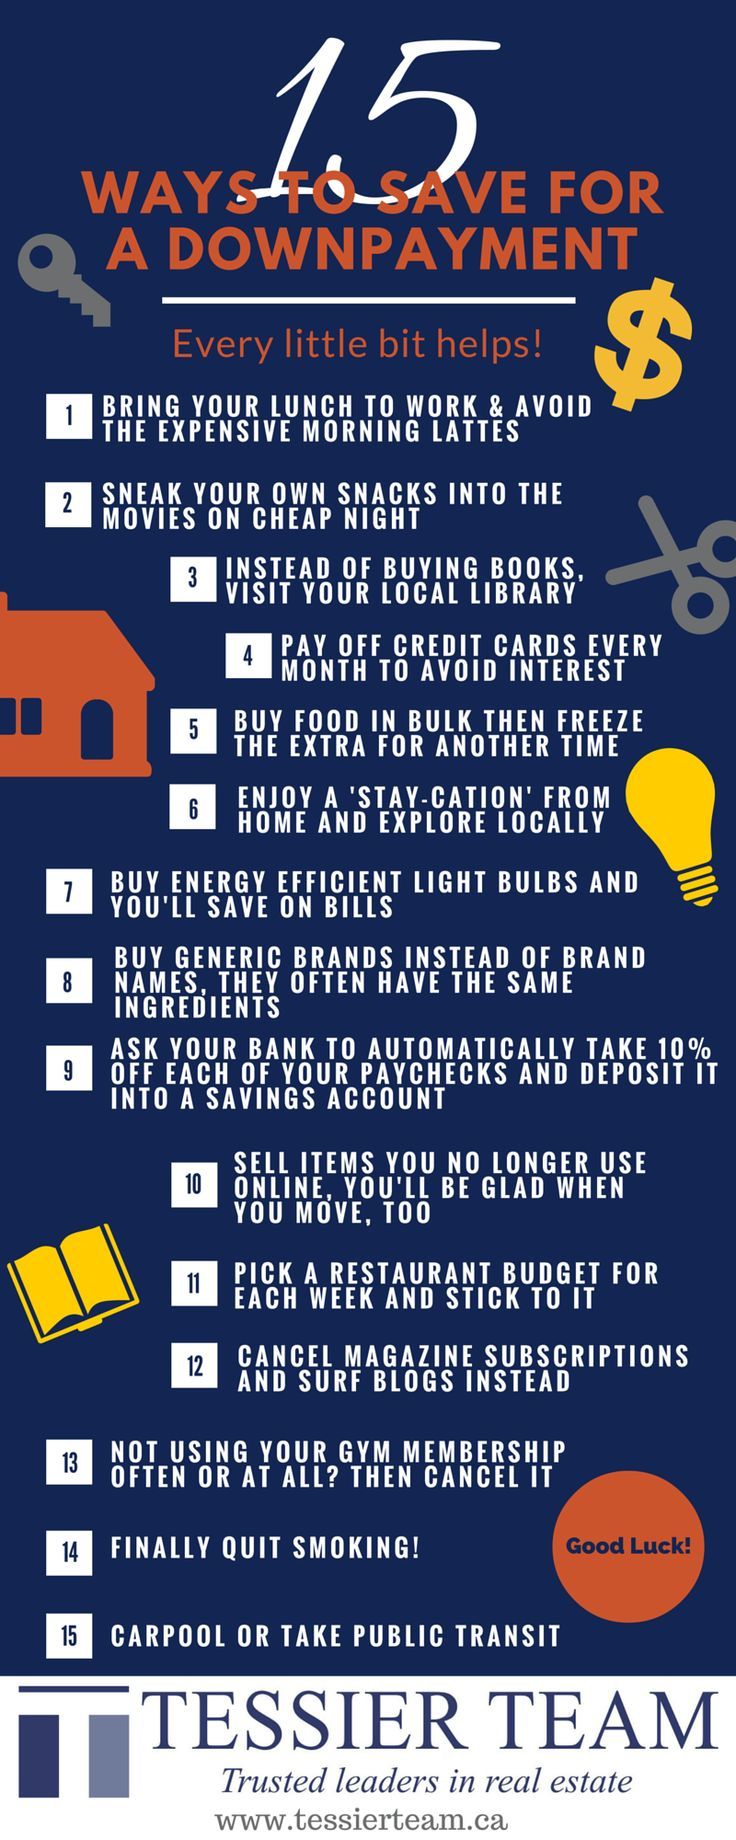 15 ways to save for a downpayment #buyingahome #savings #tips #realestate